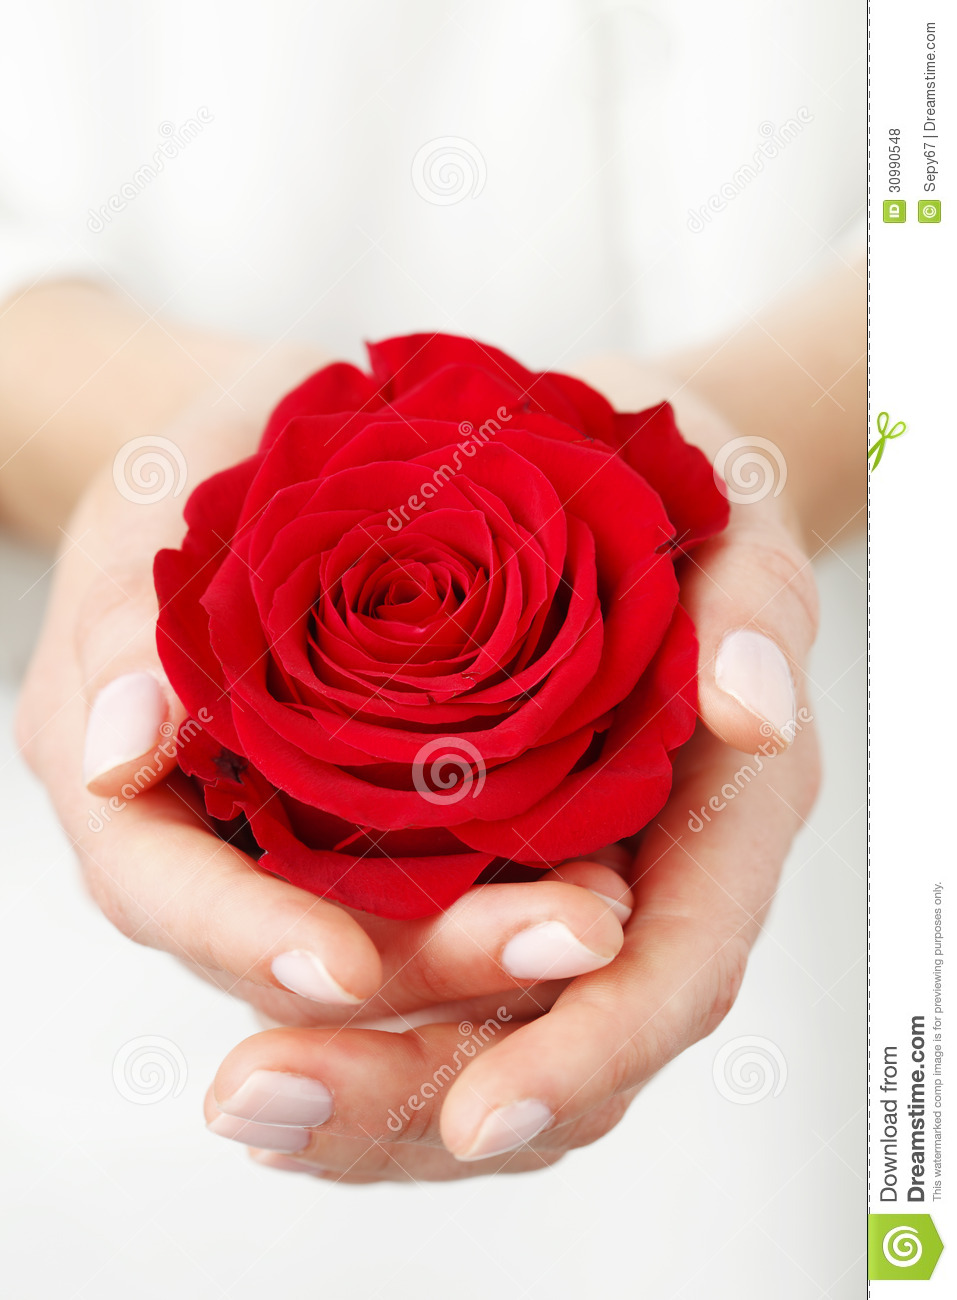 Image D Une Rose Rouge tenir une rose rouge photo stock. image du bouquet, manucure - 30990548